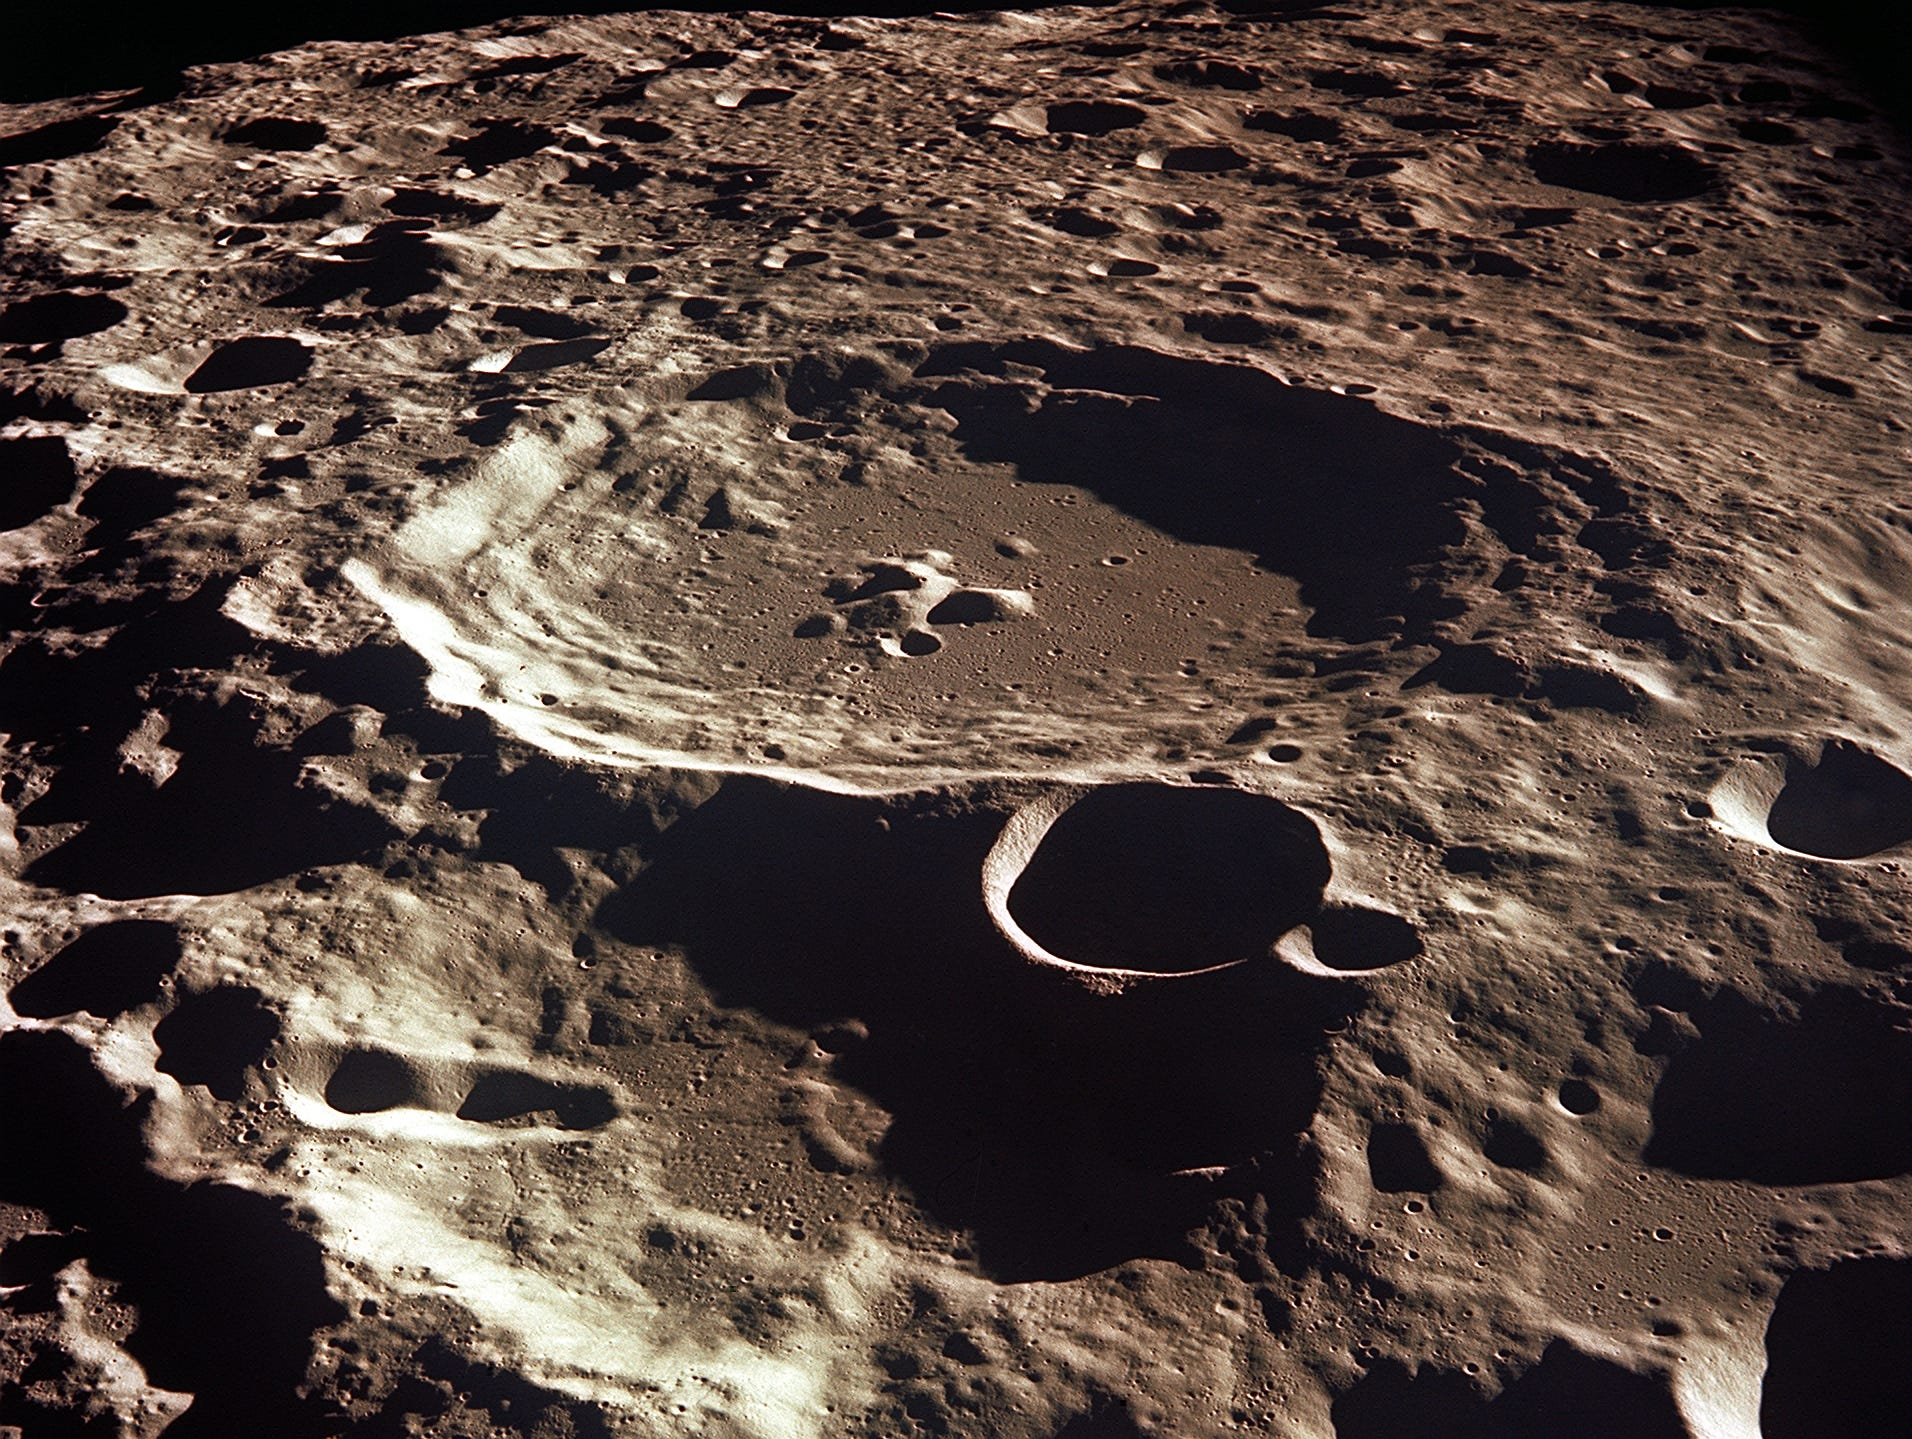 The far side of the Moon is rough and filled with craters. By comparison, the near side of the Moon, the side we always see, is relatively smooth. Since the Moon is rotation locked to always point the same side toward Earth, humanity has only glimpsed the lunar farside recently - last century.